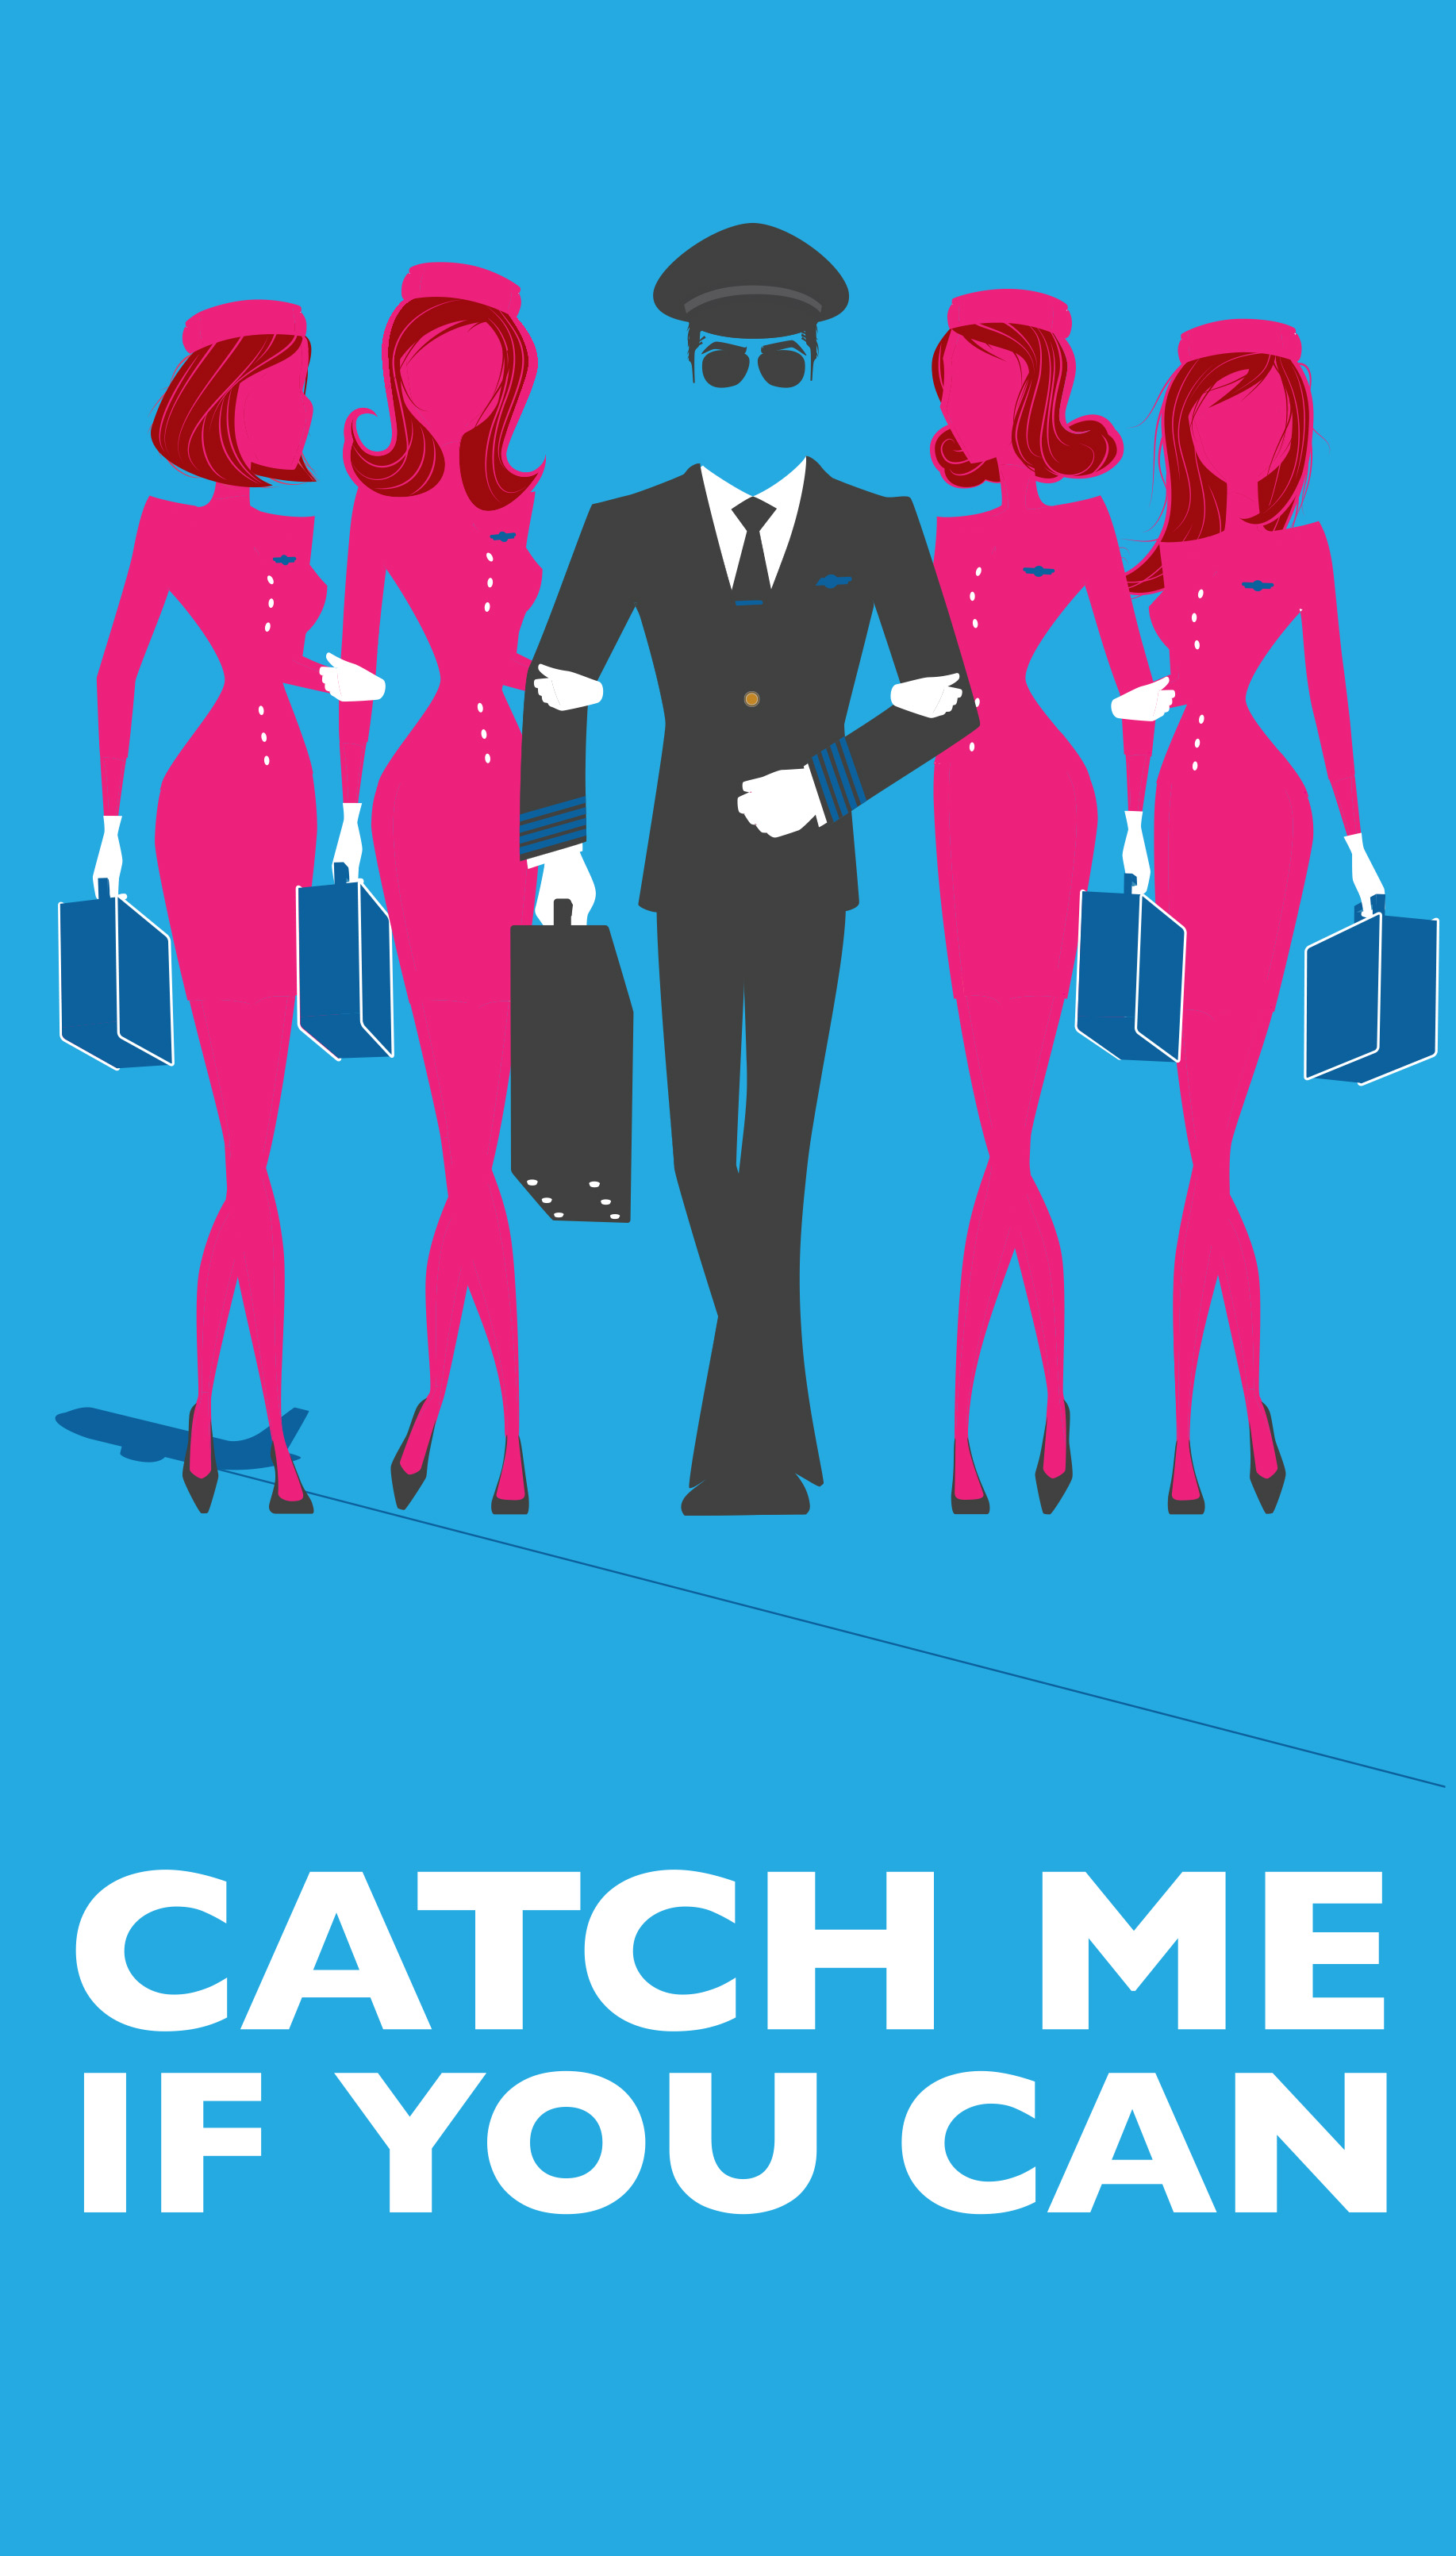 You Can Do It: CATCH ME IF YOU CAN